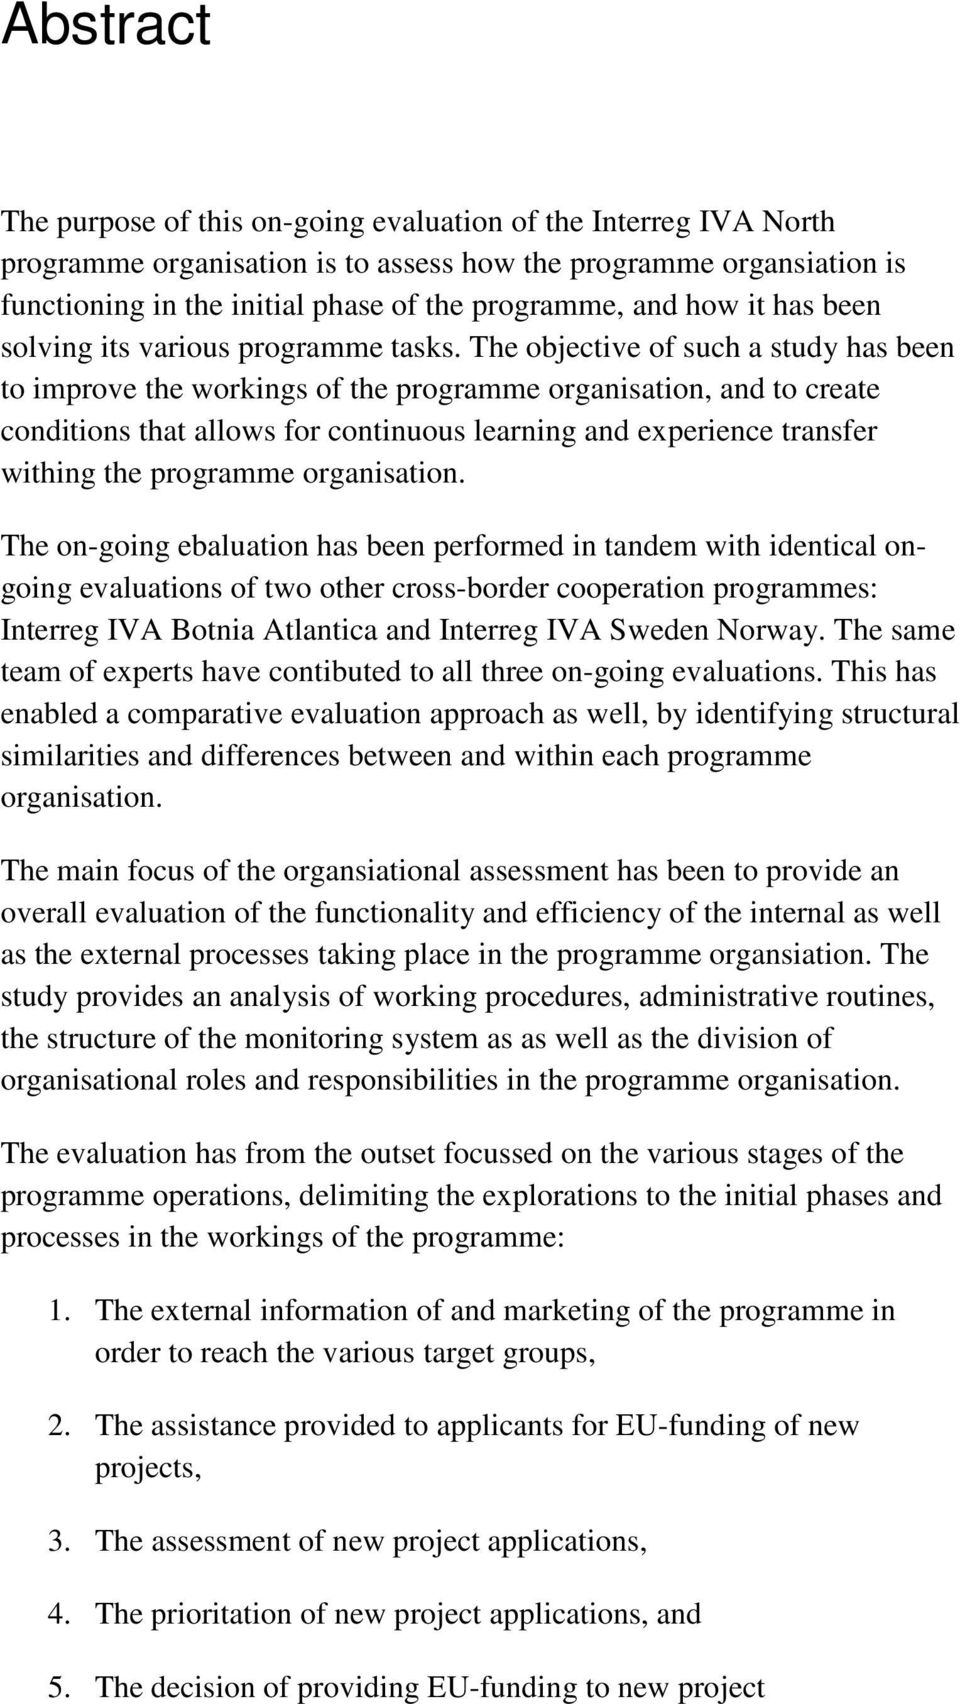 The objective of such a study has been to improve the workings of the programme organisation, and to create conditions that allows for continuous learning and experience transfer withing the